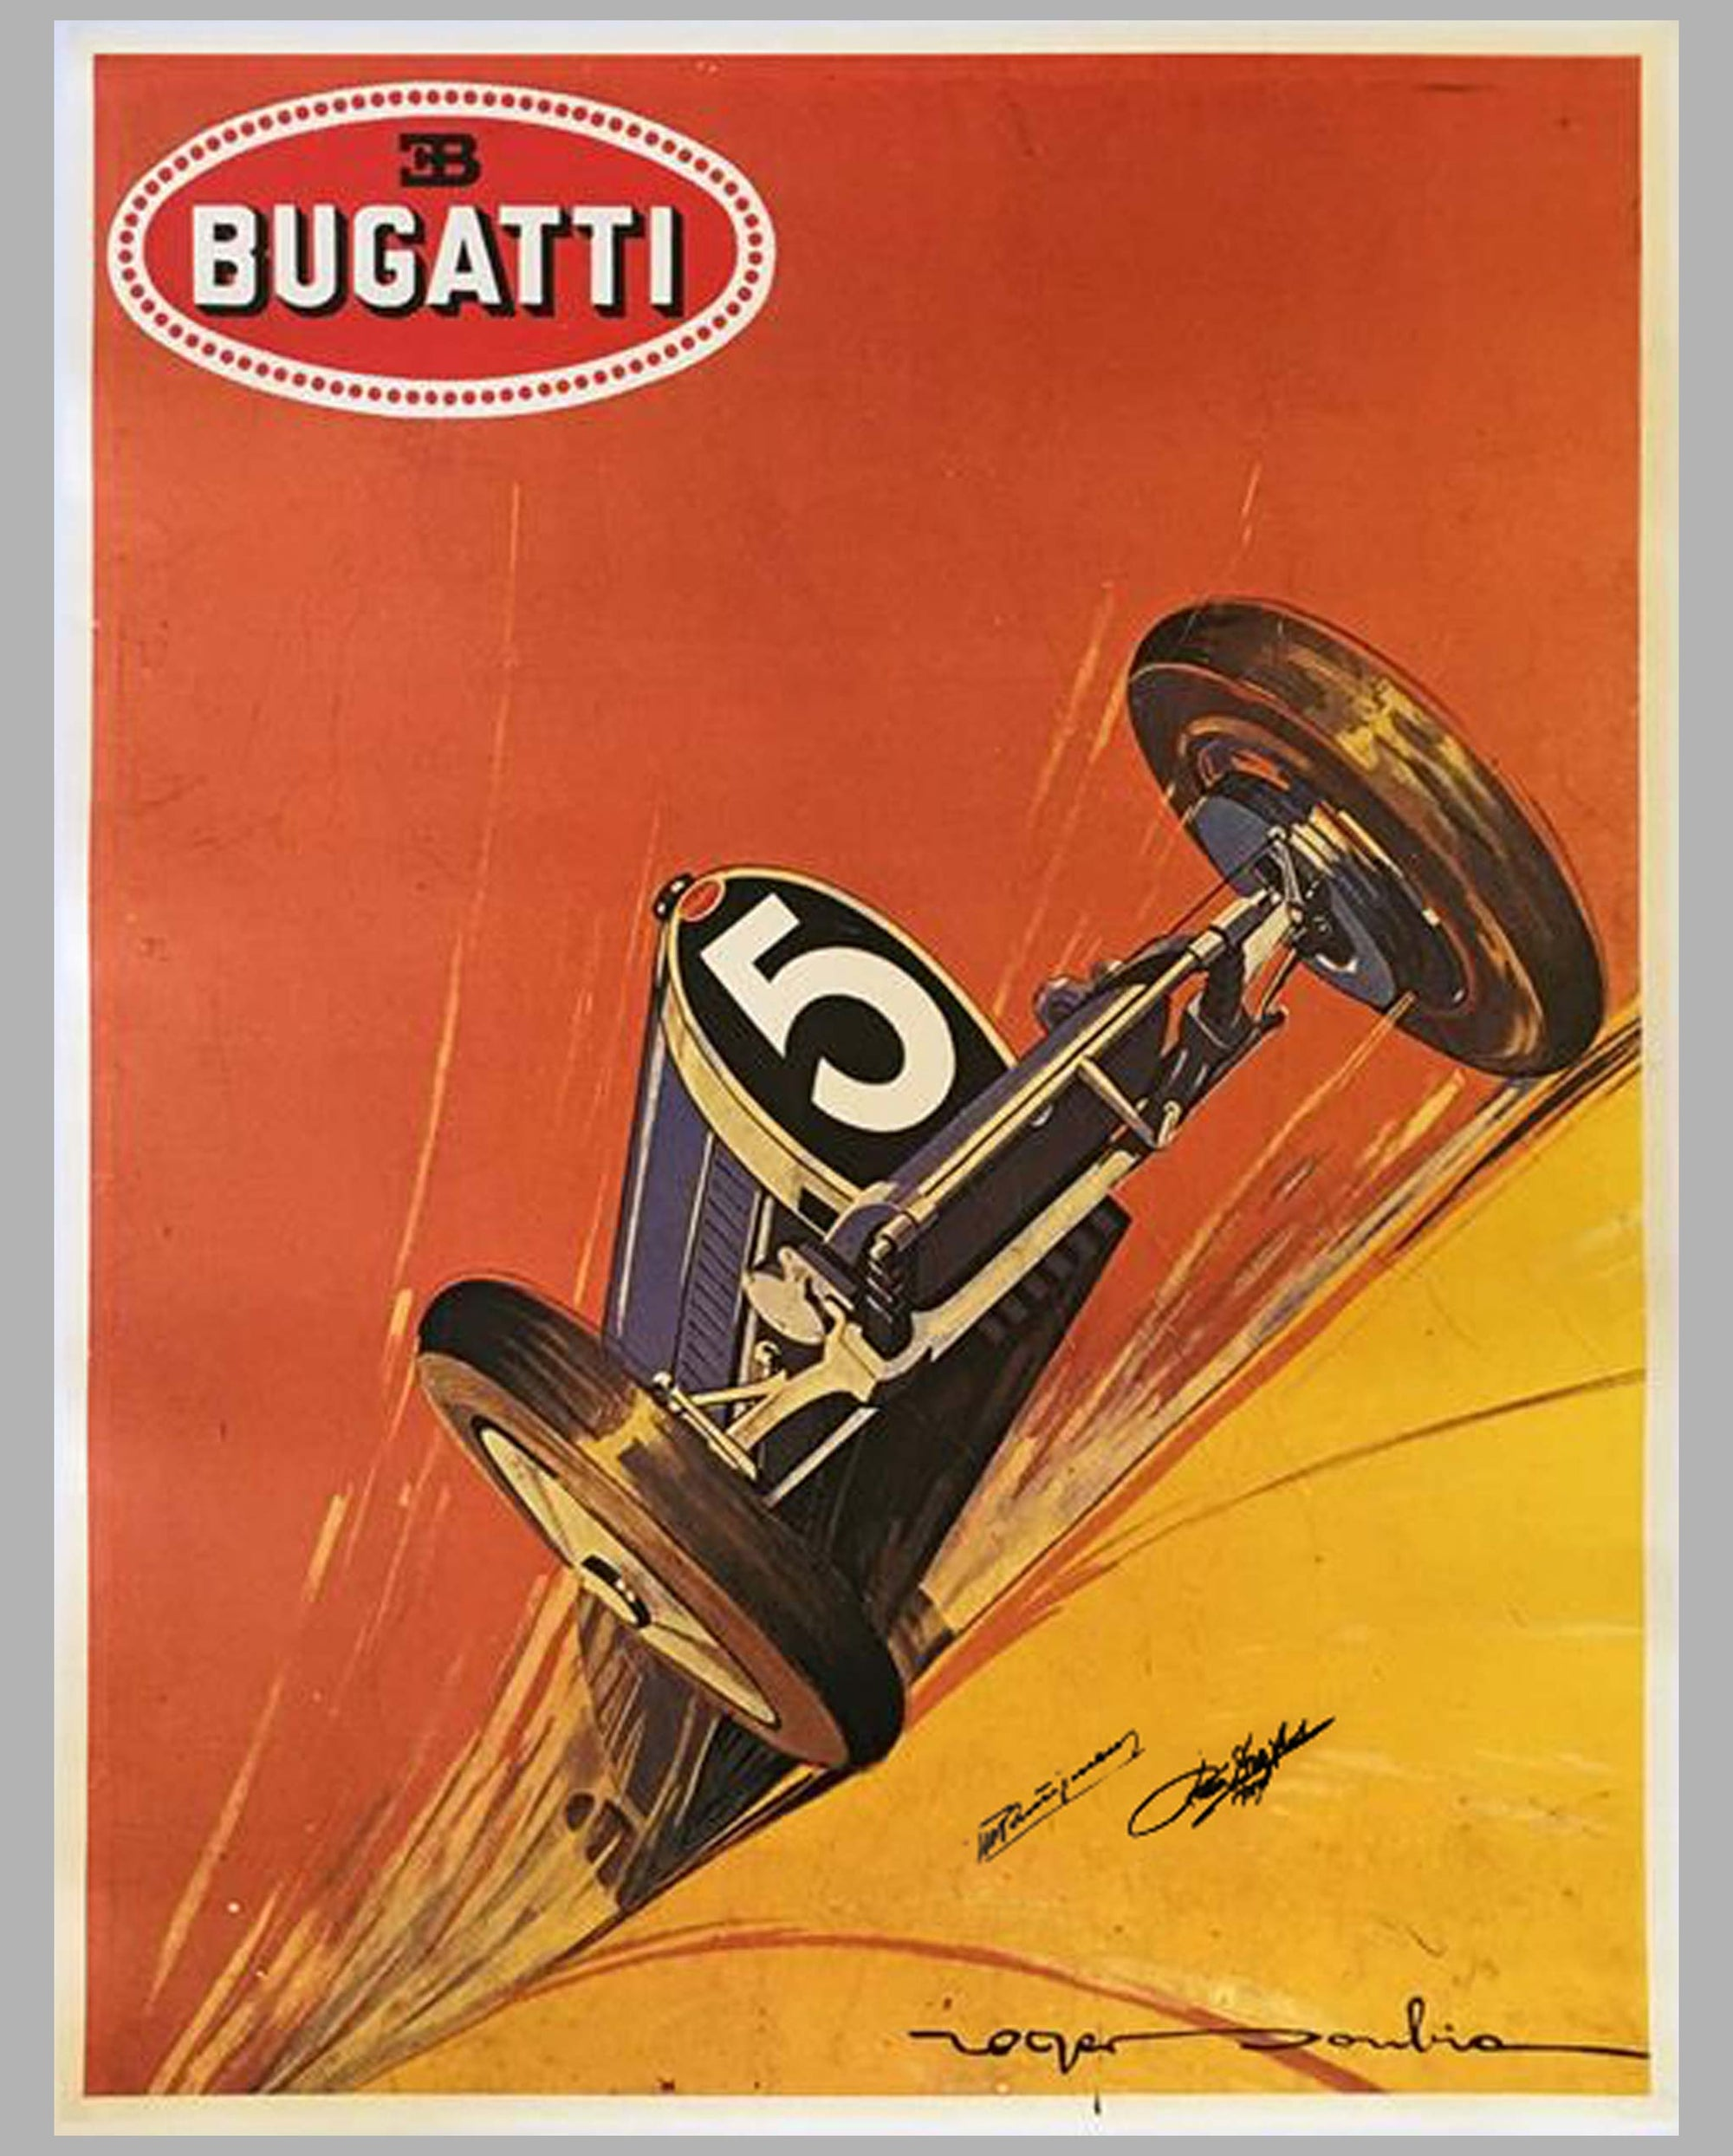 Type 35 Bugatti poster reproduction by Roger Soubie, autographed